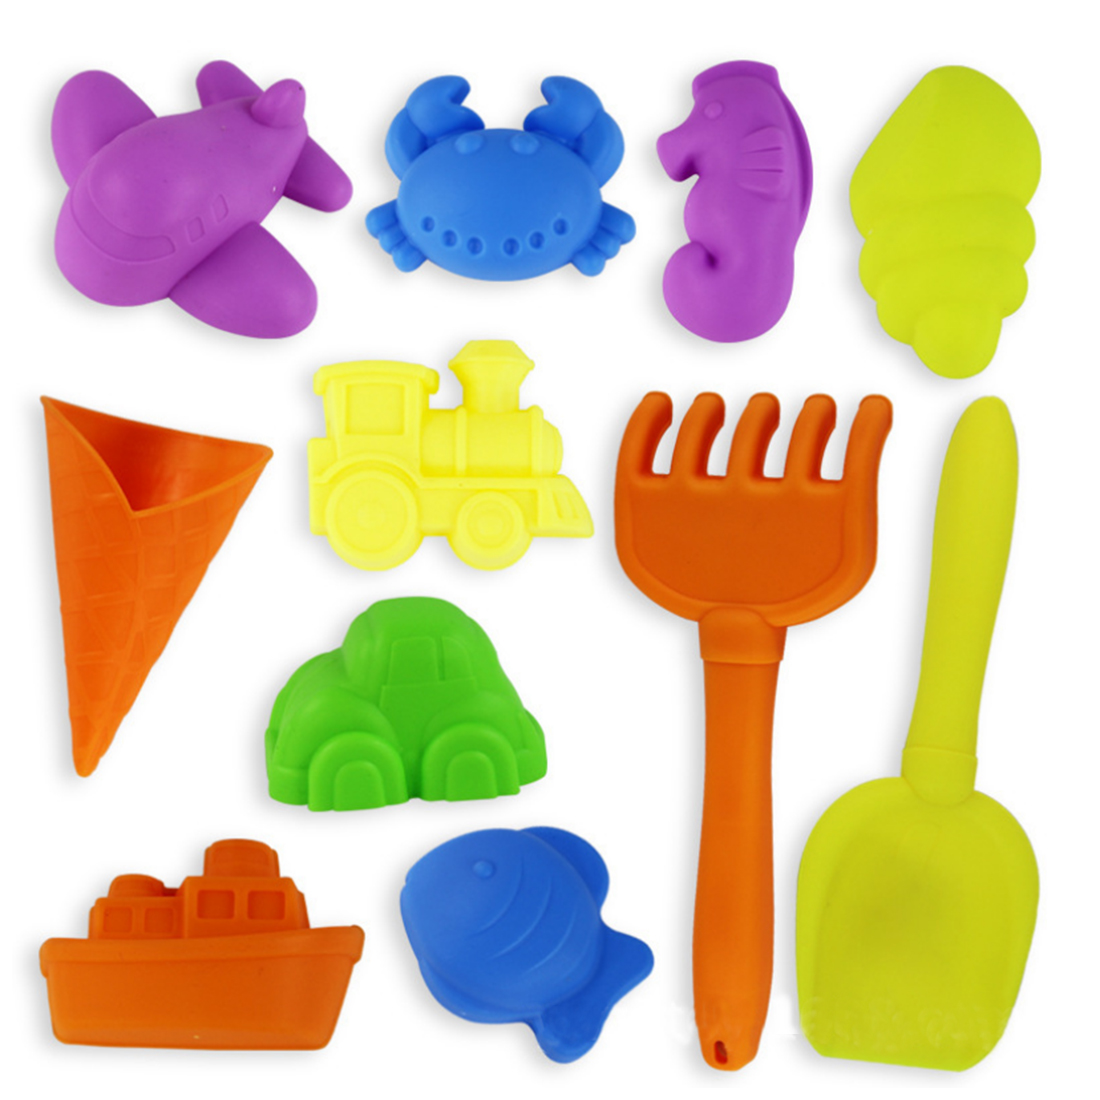 12Pcs Children Beach Play Toy Novelty Sand Mold Kids Shovel Beach Toy Color Random by